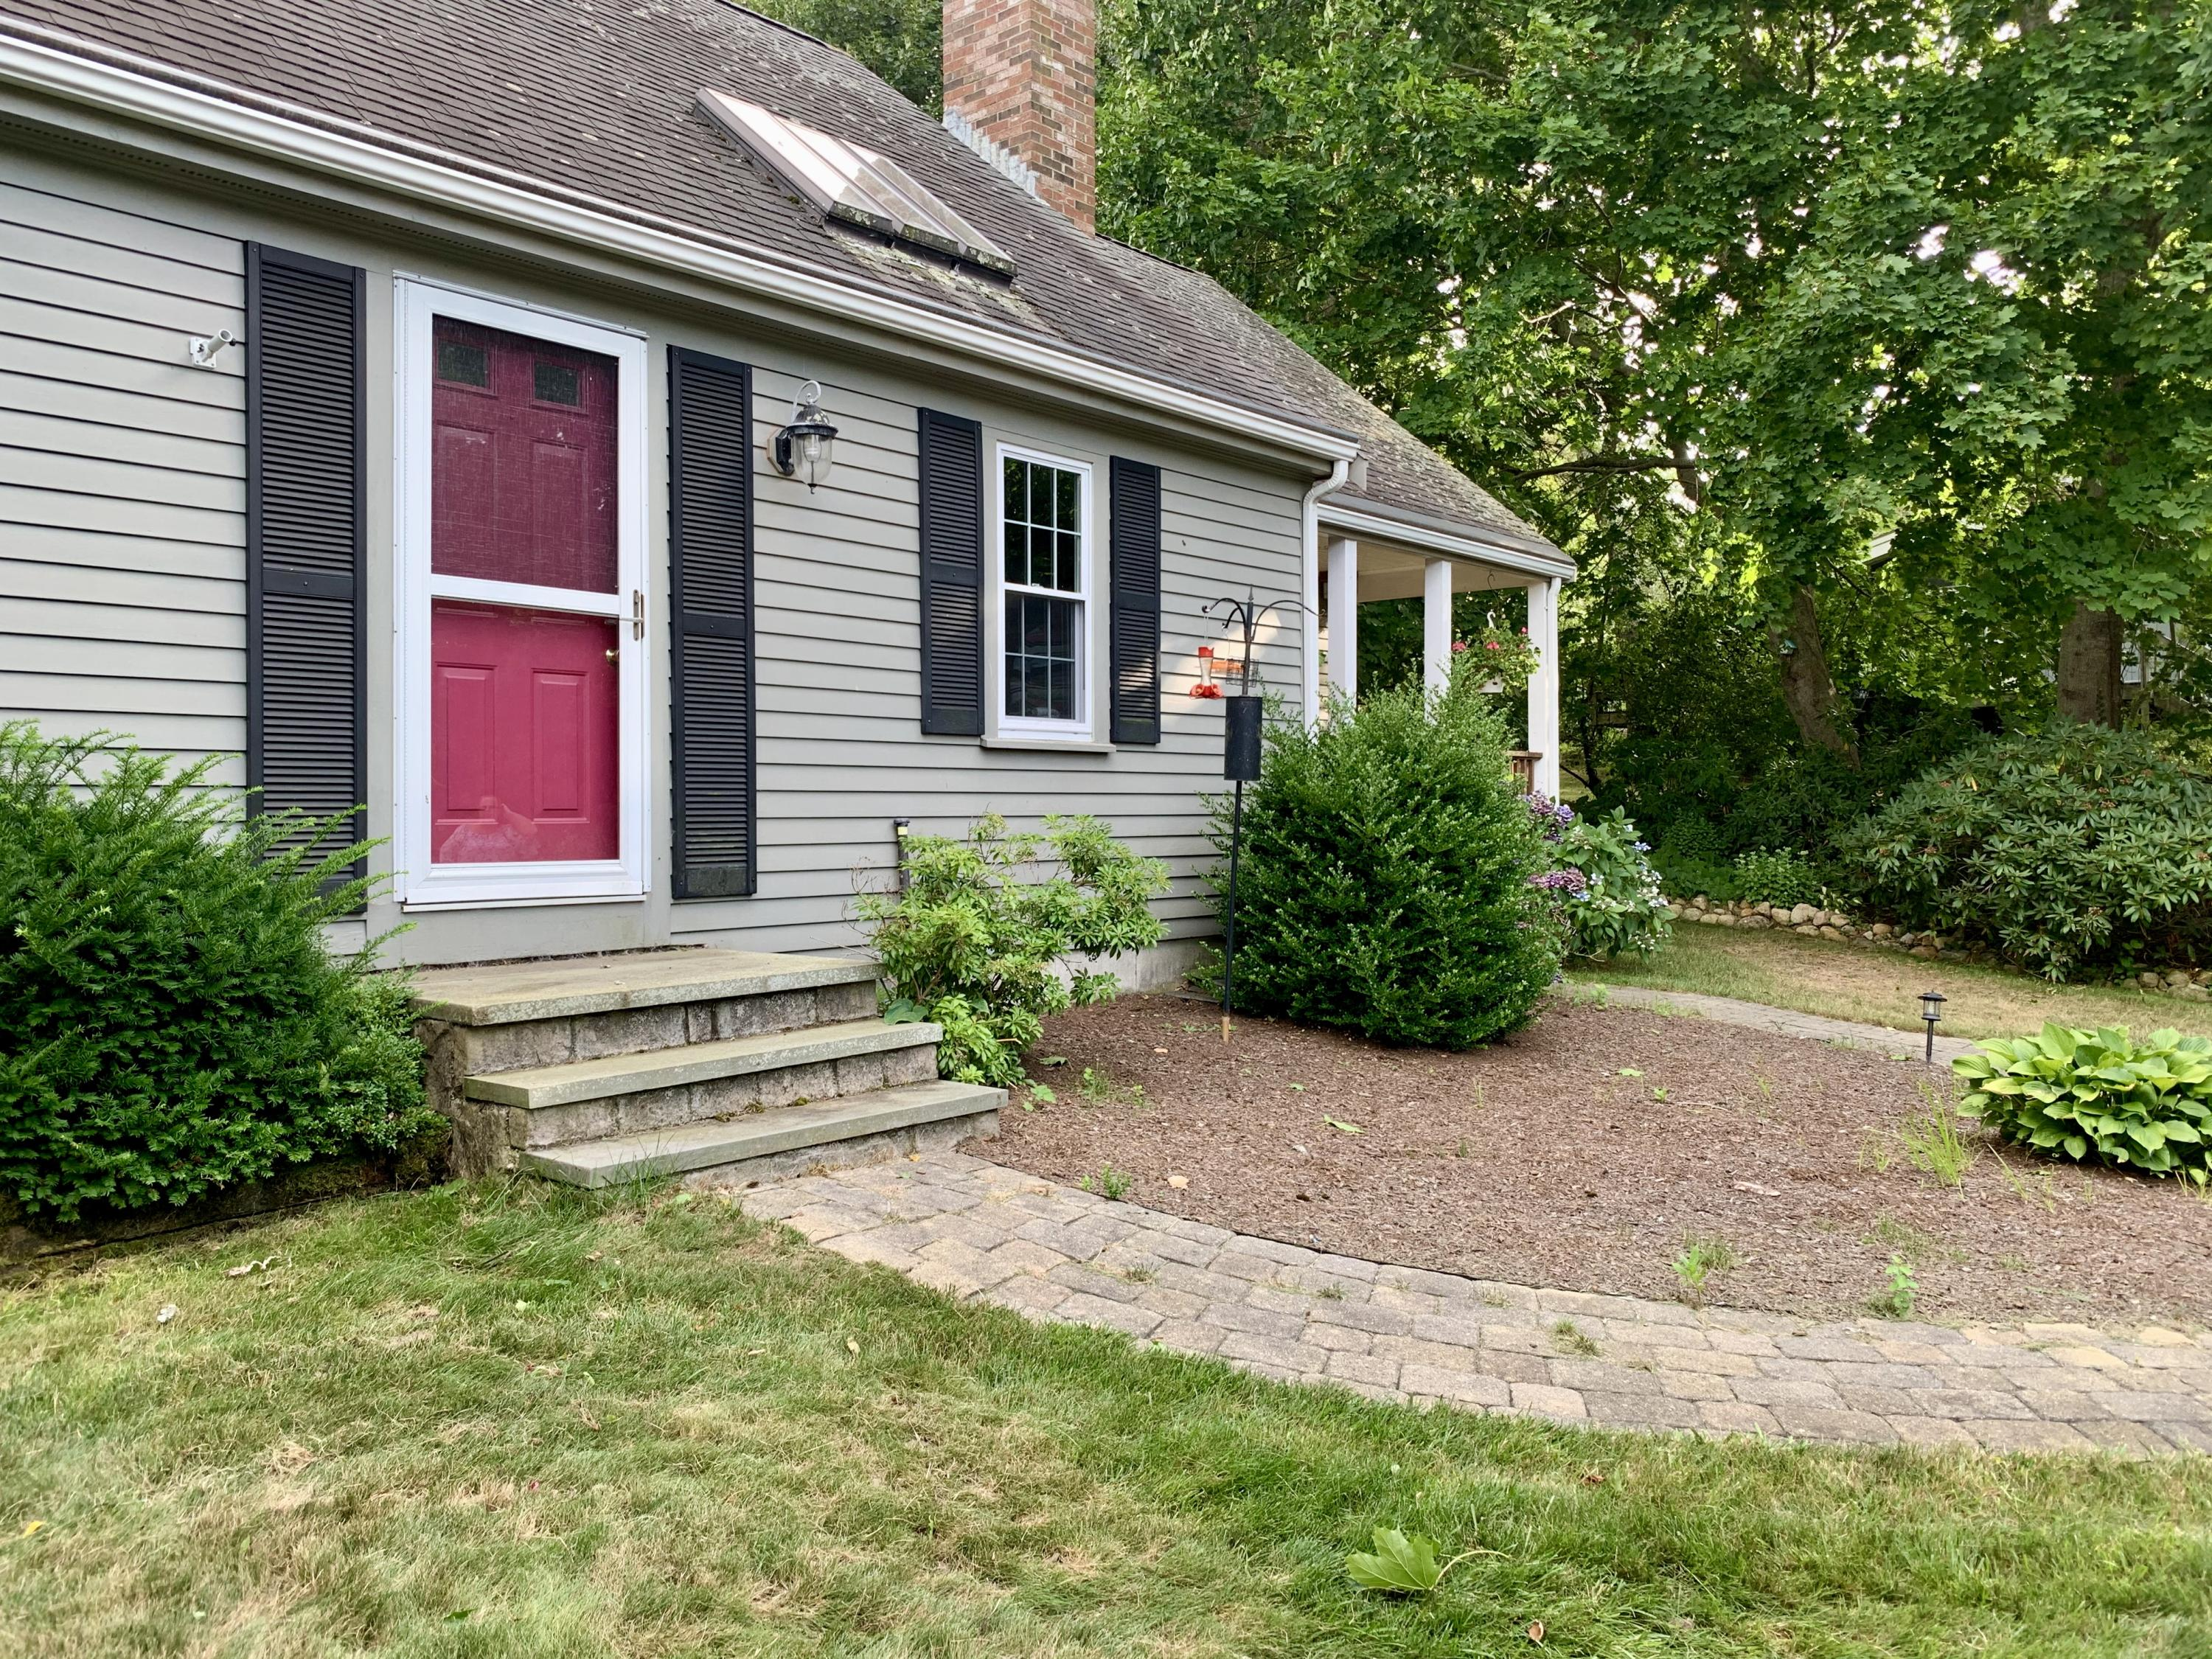 64 Nathans Pasture Way, Brewster MA, 02631 sales details